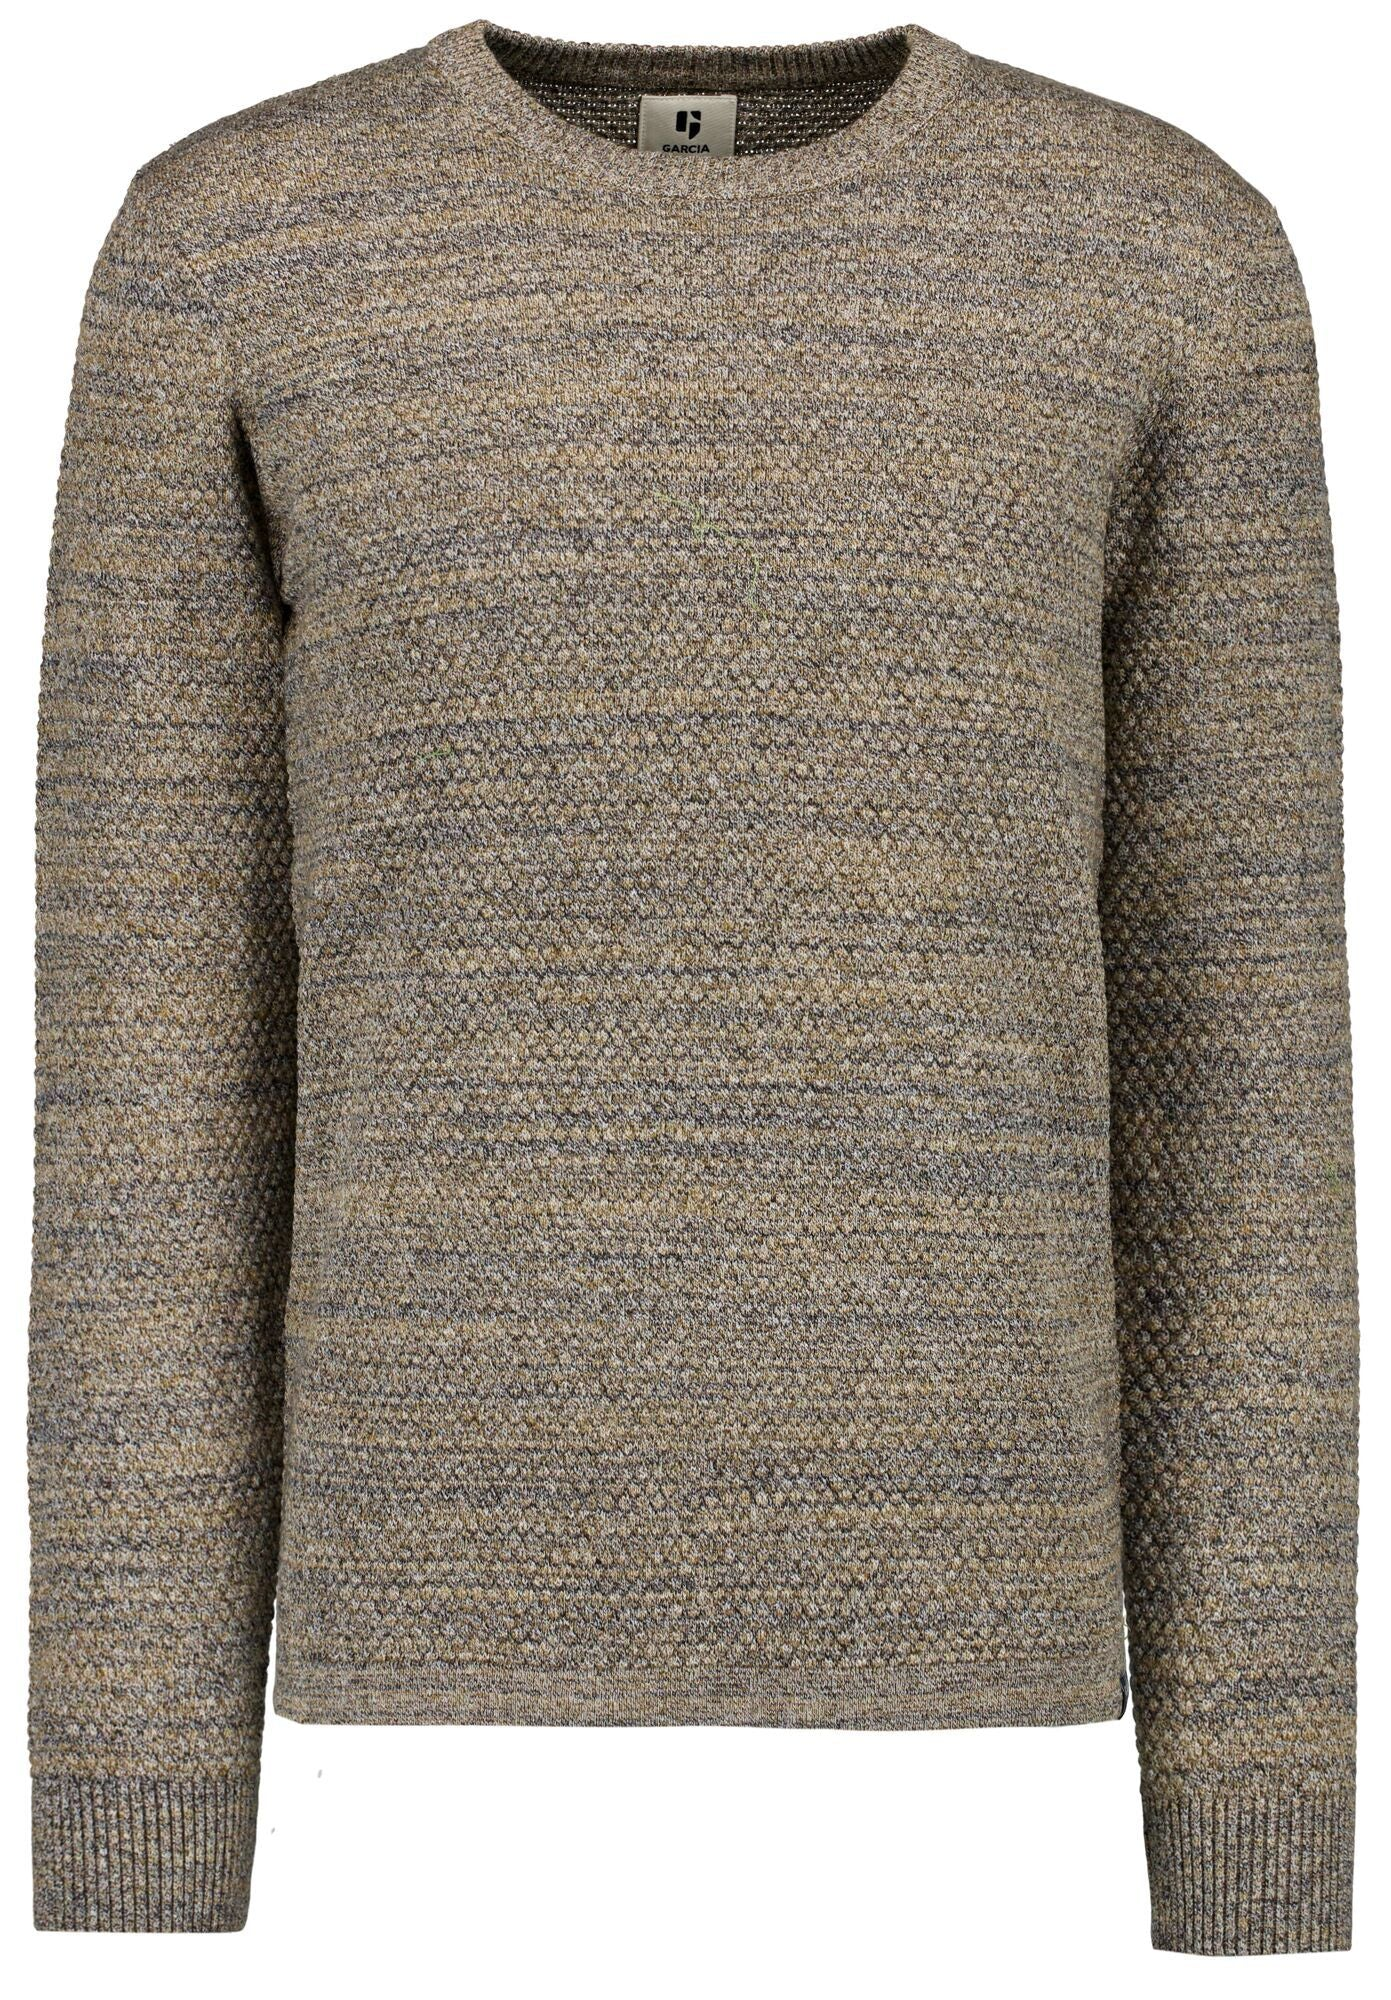 Garcia men's sweater V01244 amber